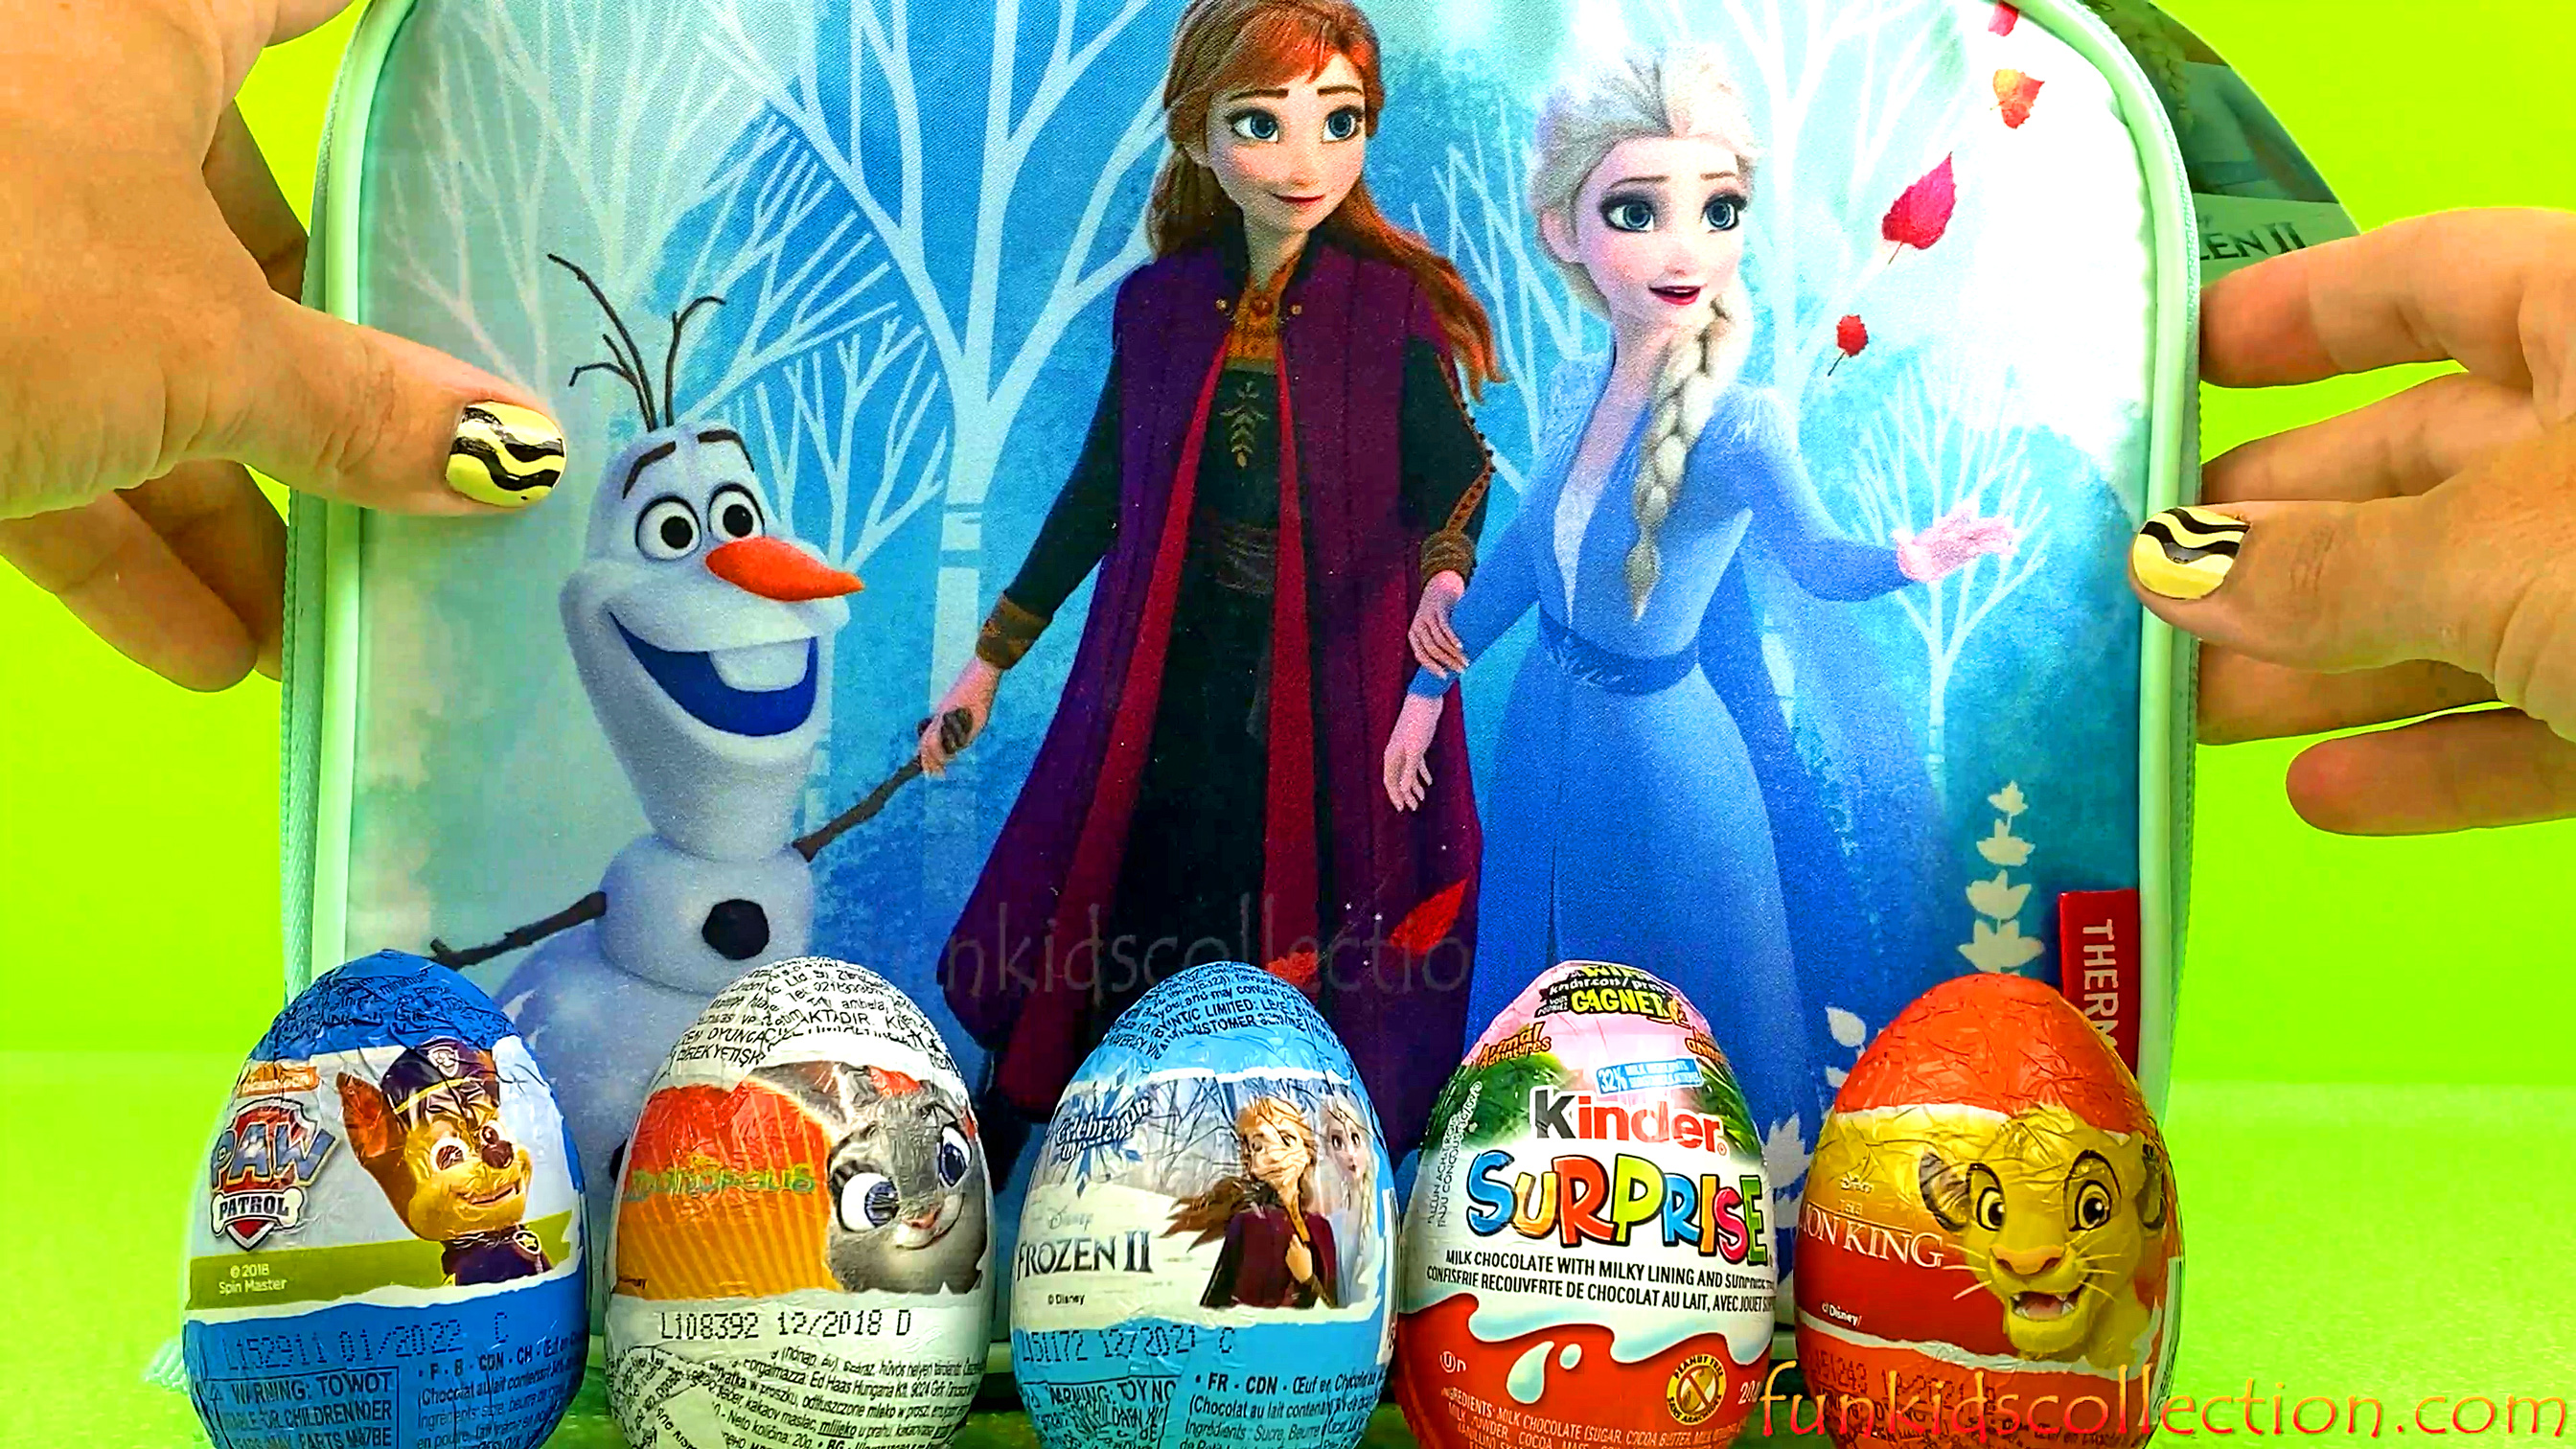 Zaini Egg Surprises & Kinder Egg Surprises Opening | Frozen 2 Lunch Bag with Chocolate Egg Surprises